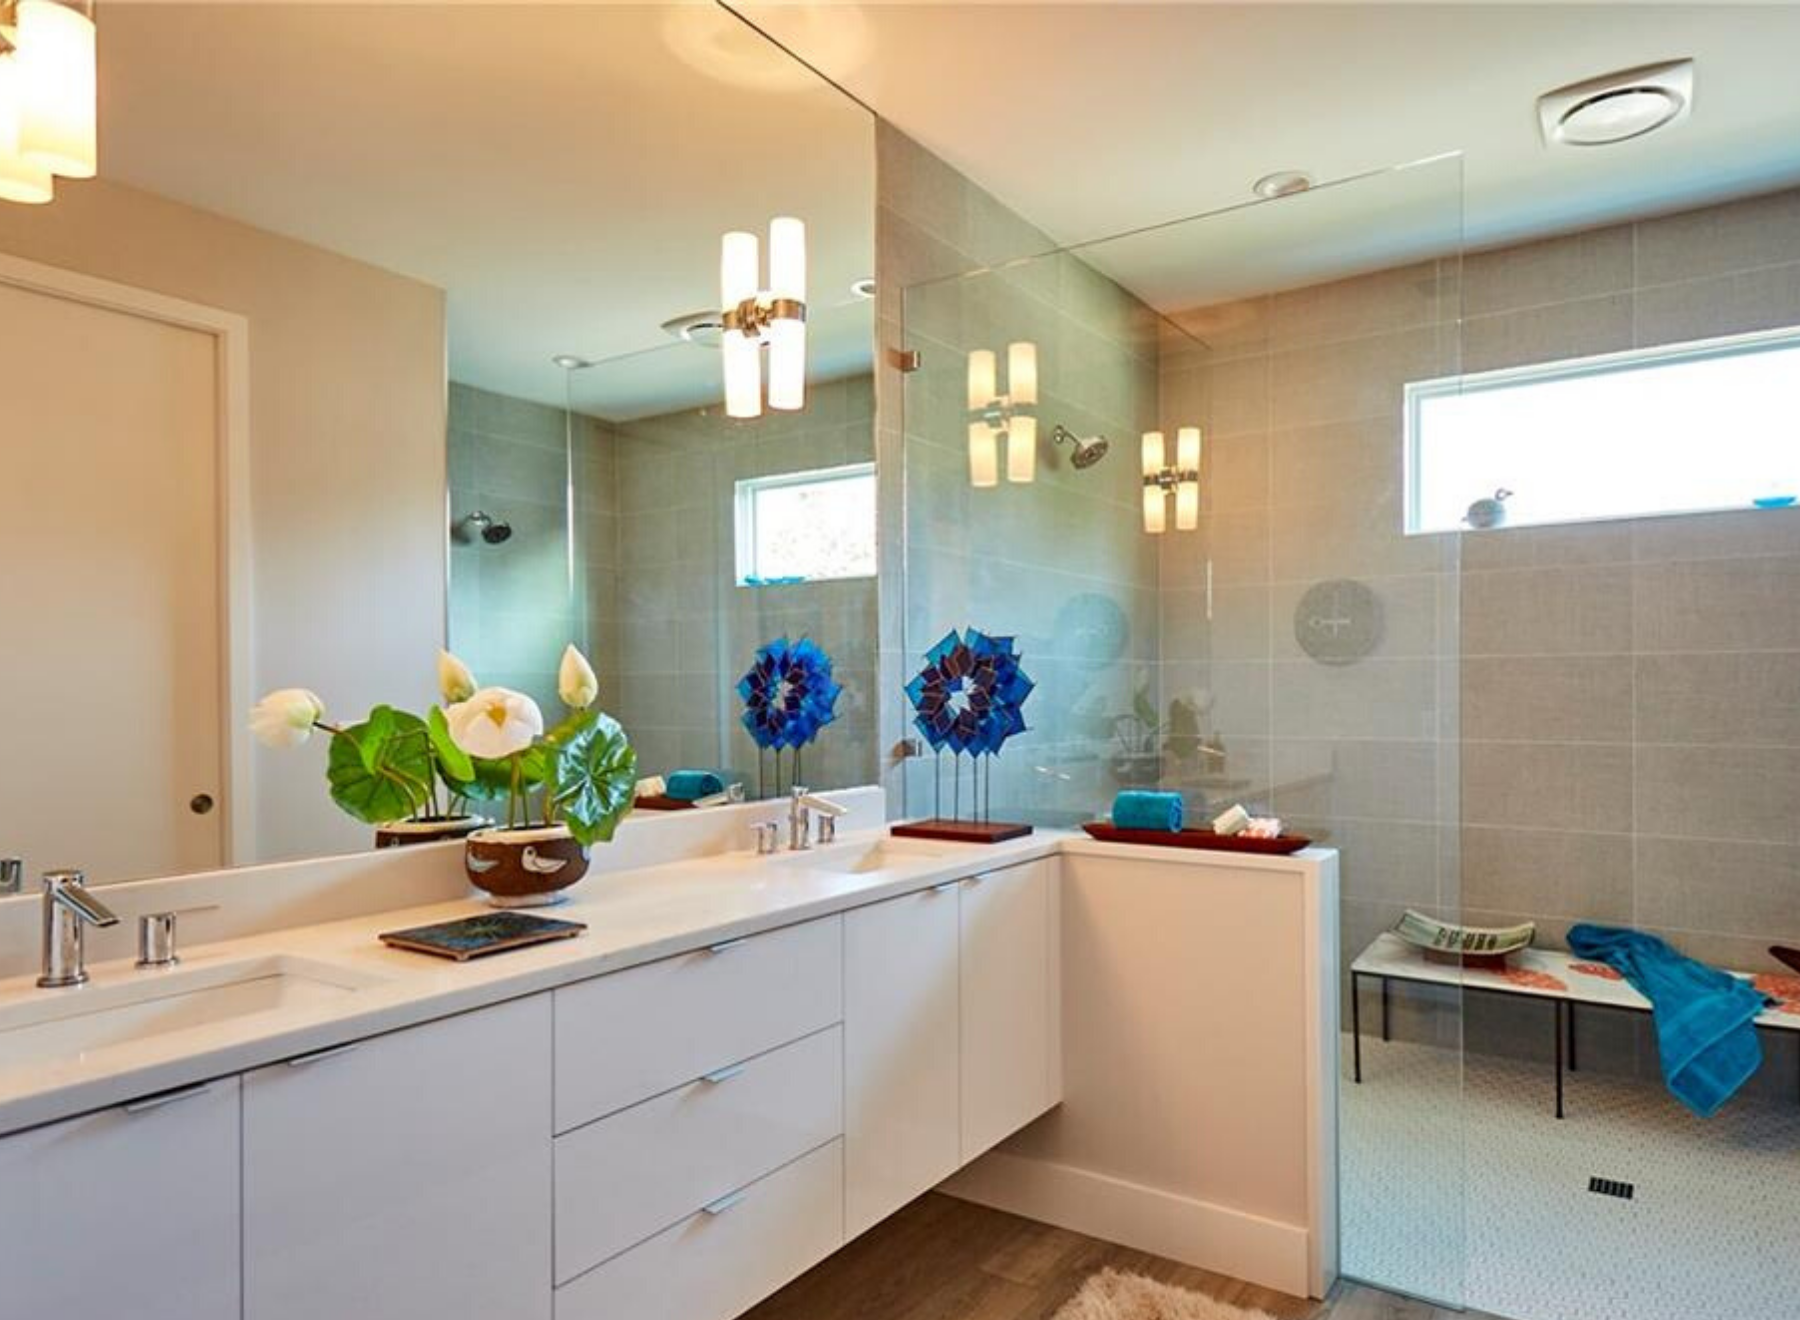 First,The large horizontal window gives blue sky views from the shower. And the full wall vanity mirror reflects the light throughout the bathroom.